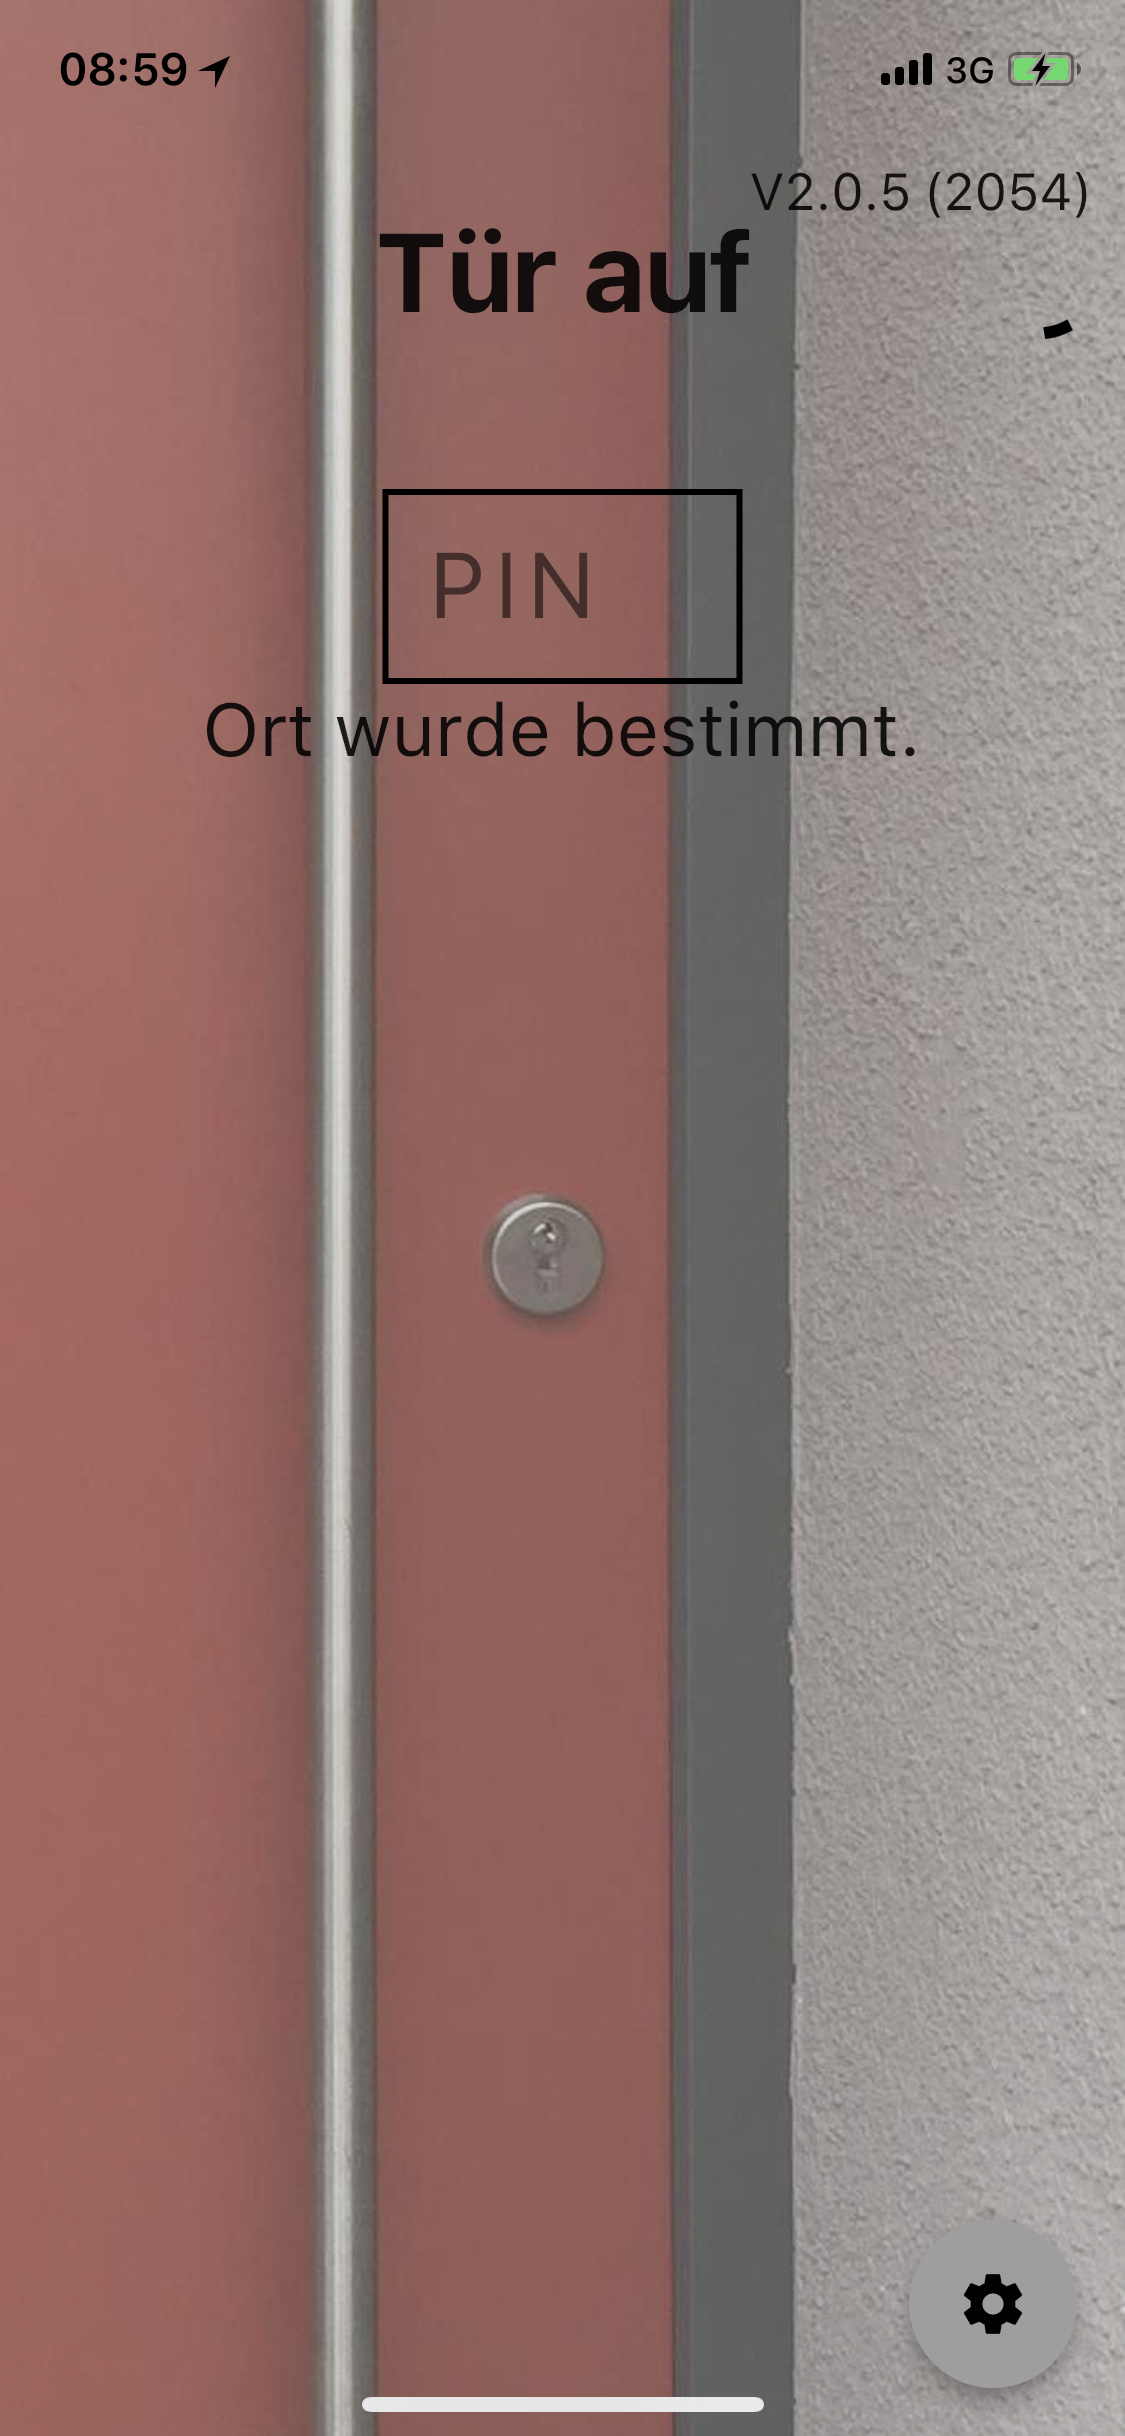 images/stores/appStore/tuerauf-3.png